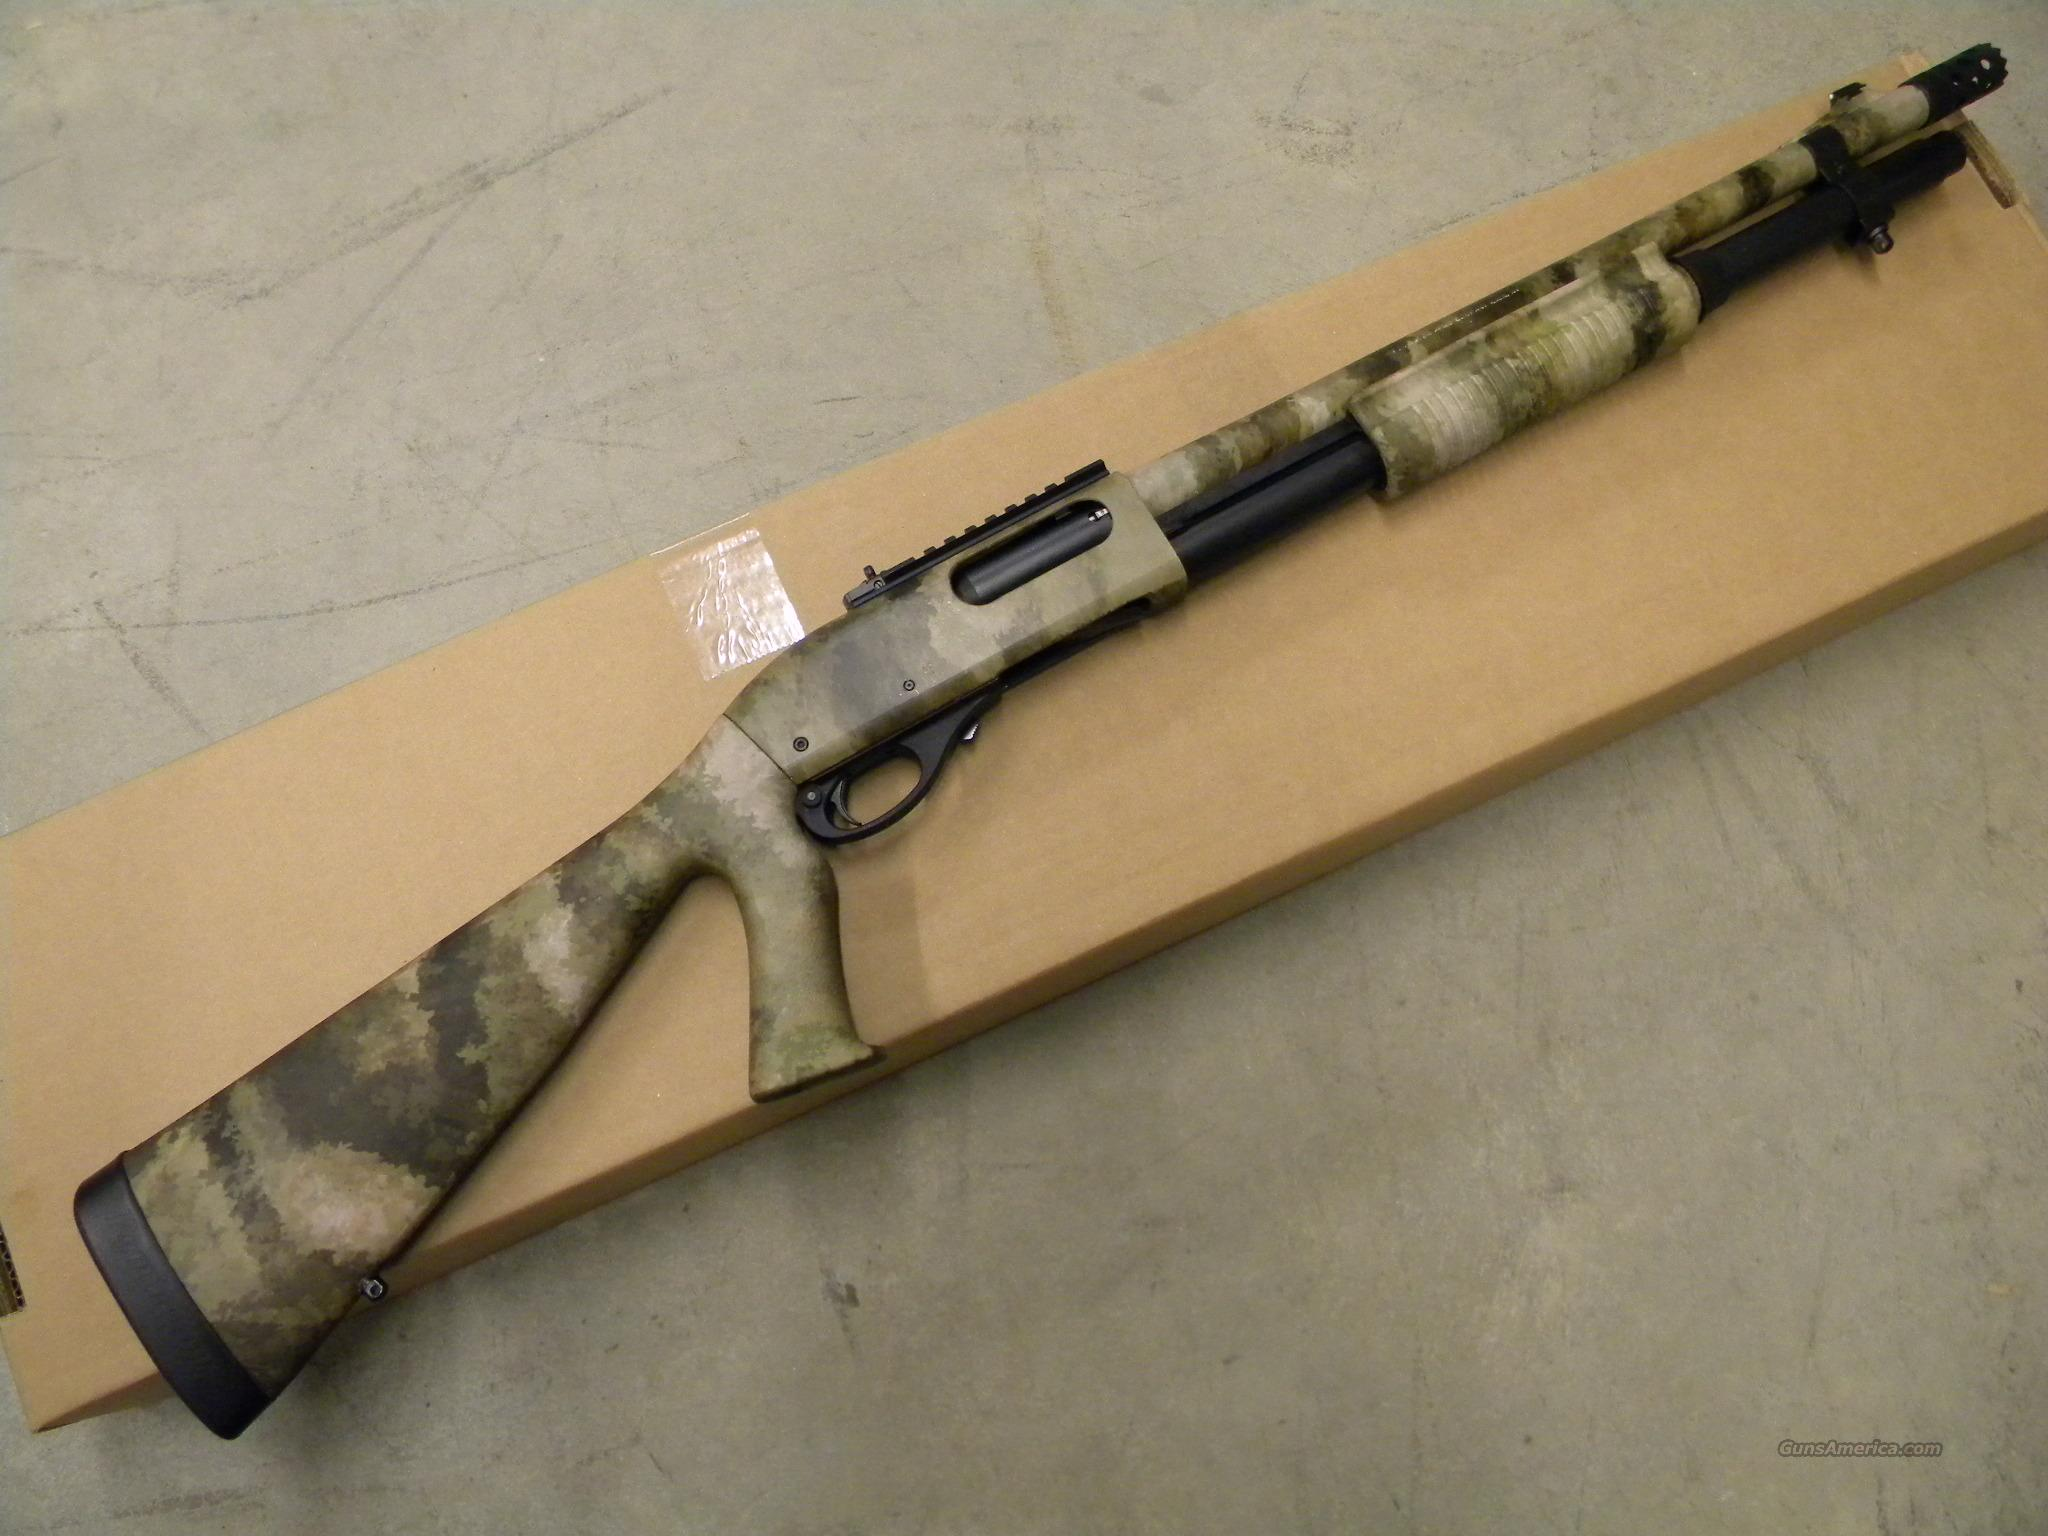 REMINGTON 870 TACTICAL ATACS PUMP SHOTGUN #81204  Guns > Shotguns > Remington Shotguns  > Pump > Tactical